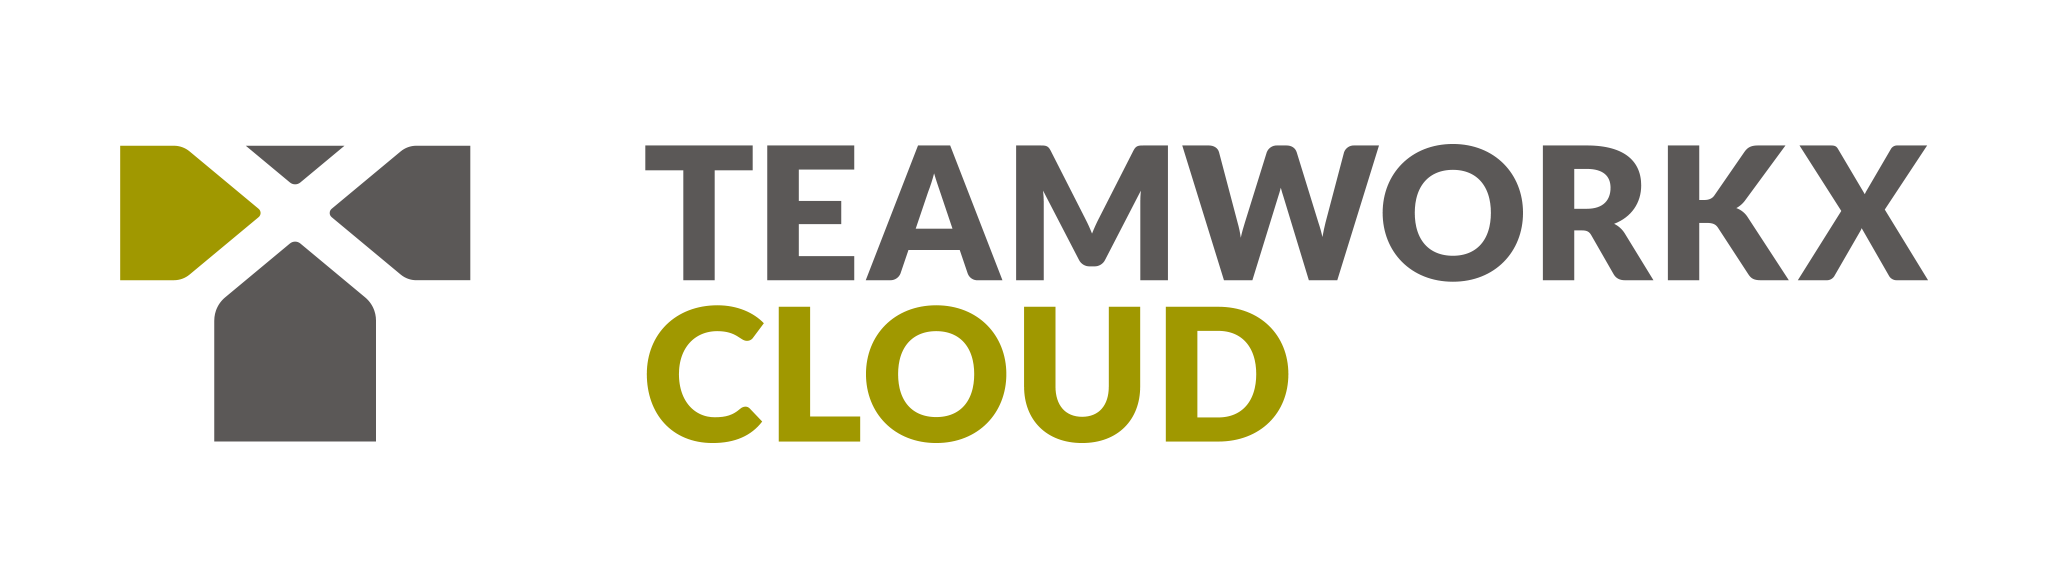 Teamworkx Cloud